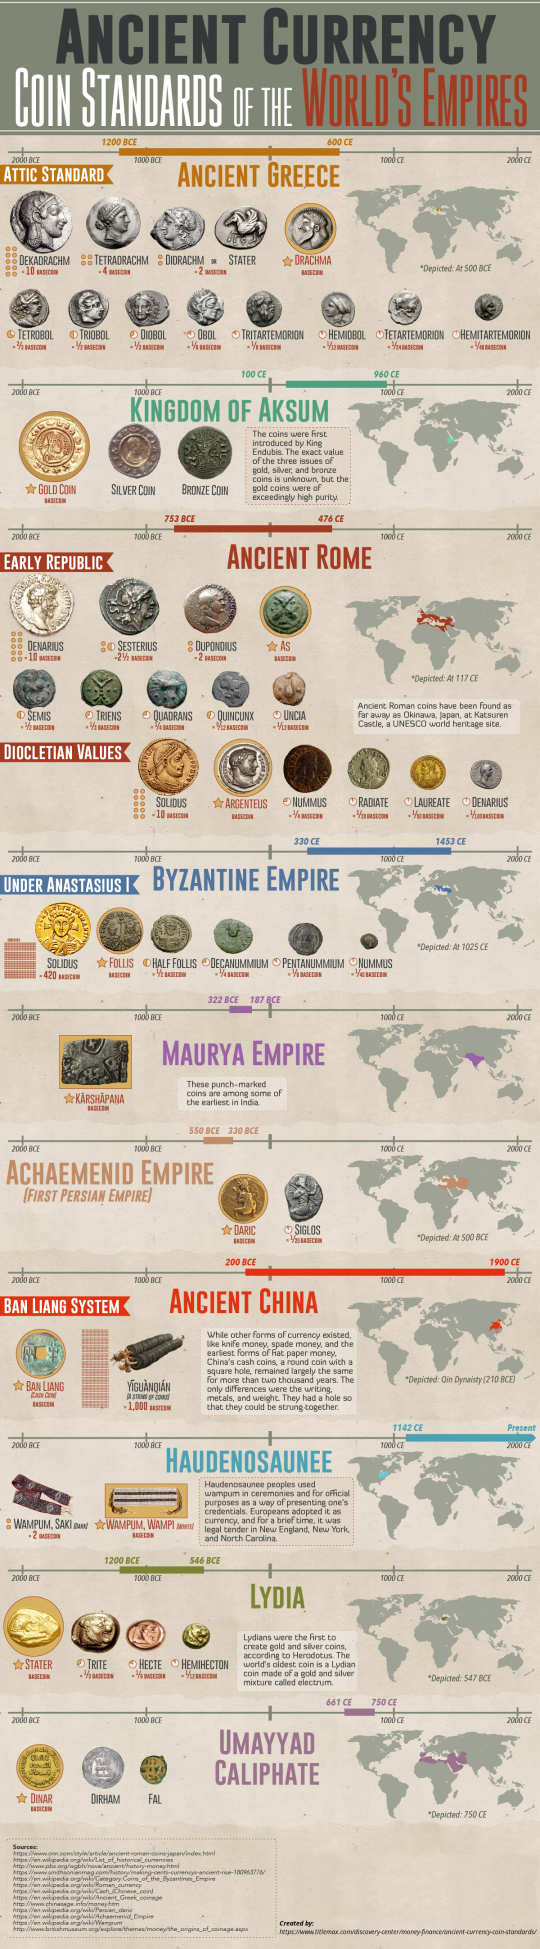 Ancient Currency - Coin Standards of the World